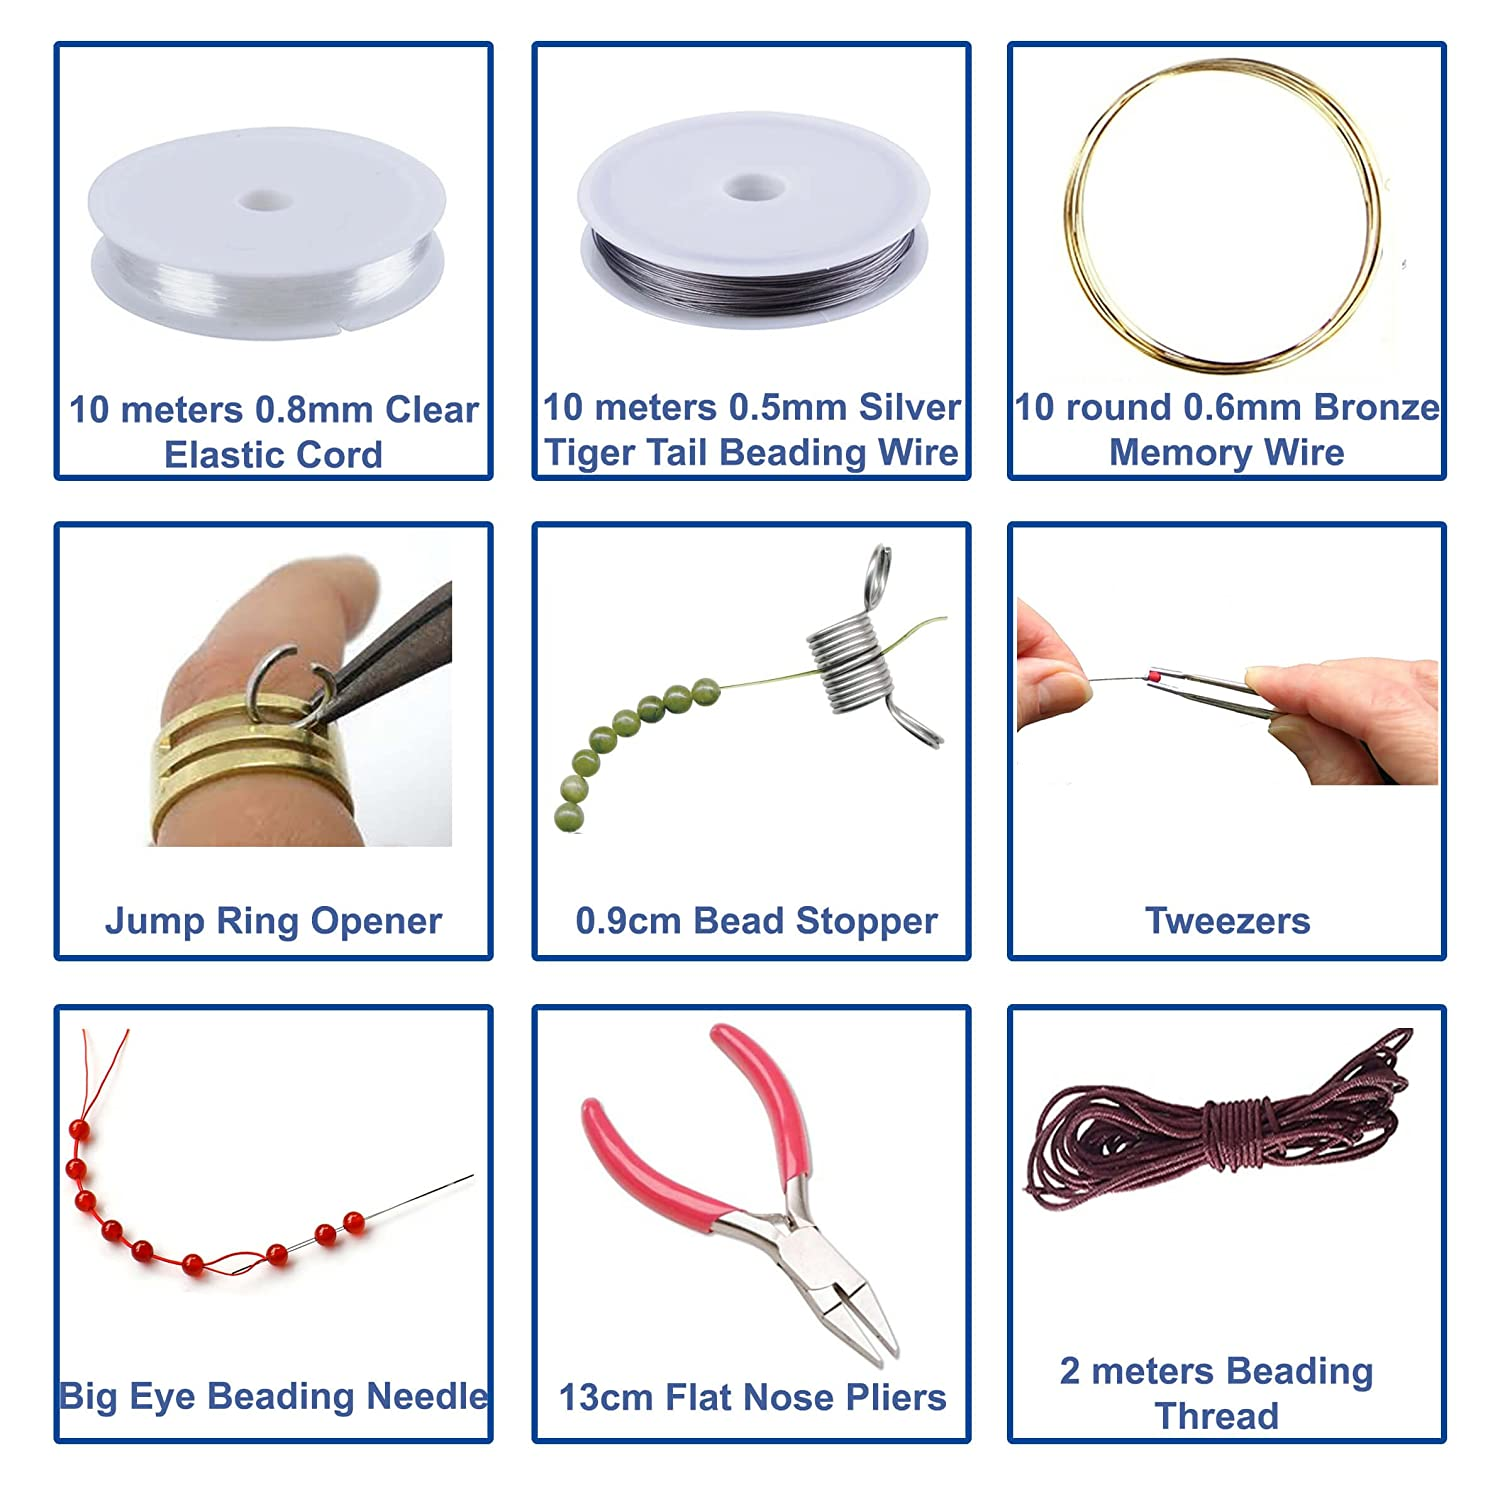 Jewelry Making Kit Diy Beading Kits For Adults Girls Teens And